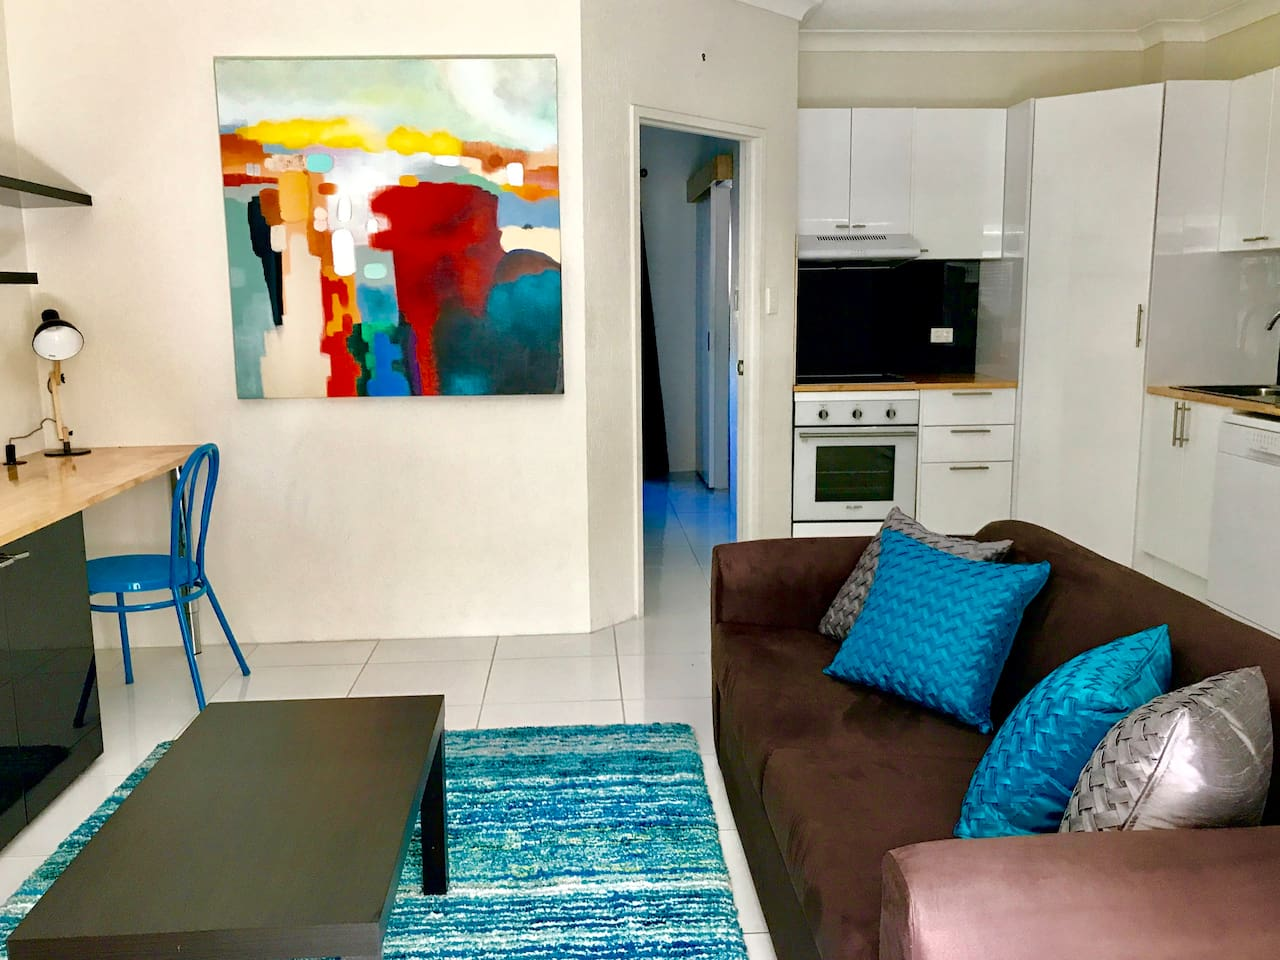 Bright and colourful, this ultra modern apartment has brand new furnishings to go with the new renovations.